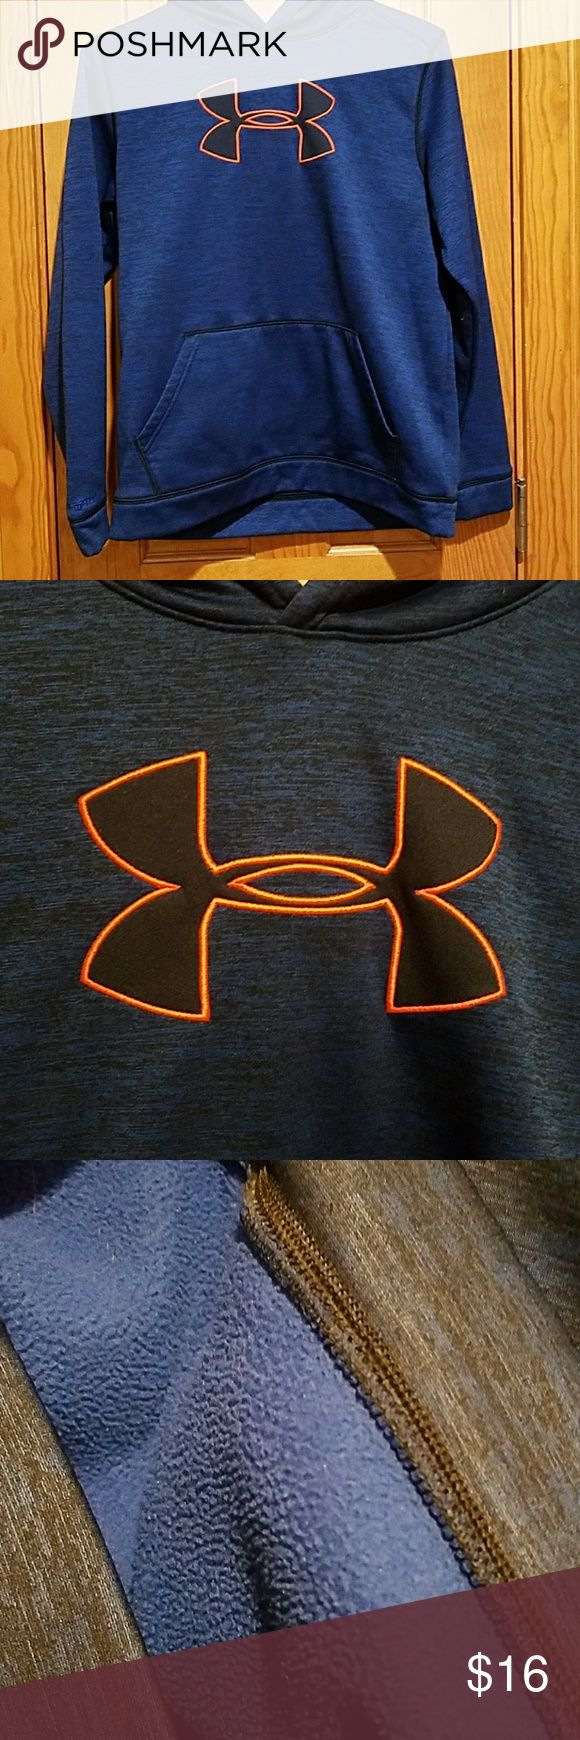 Under Armour hoodie Blue with neon pink logo. Fleece lined